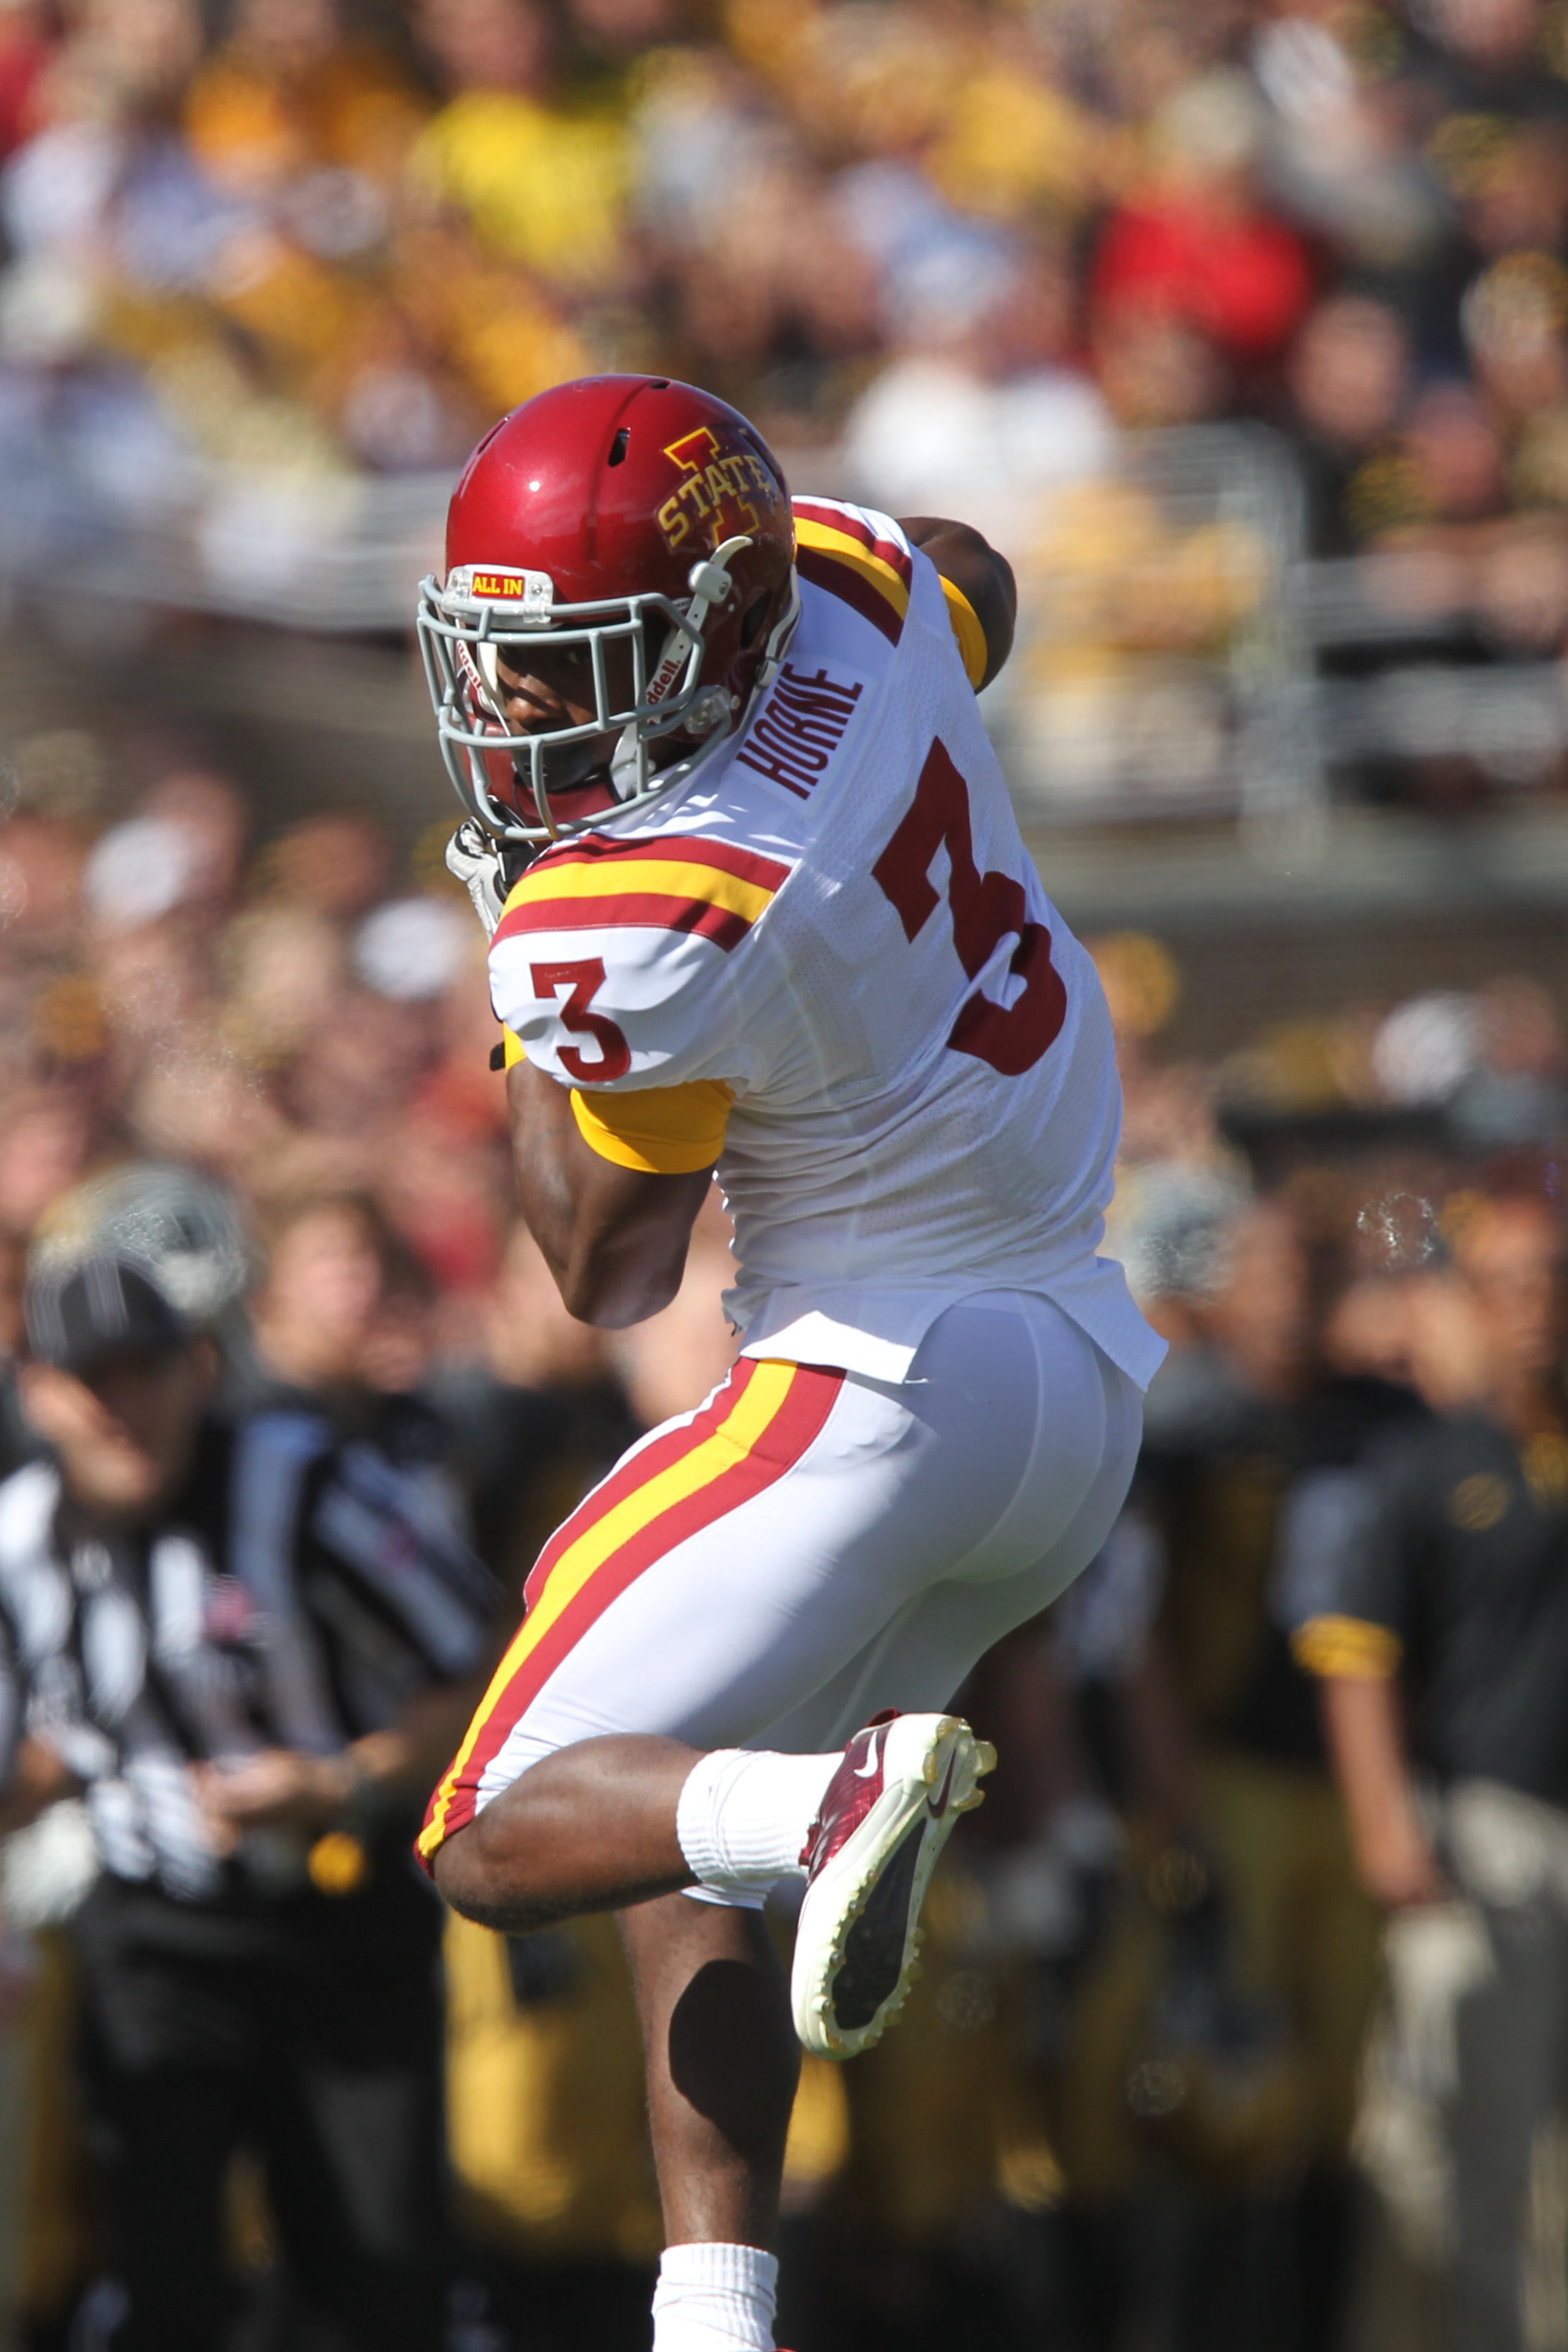 September 8, 2012; Iowa City, IA, USA; Iowa State Cyclones wide receiver Aaron Horne (3) catches a pass against the Iowa Hawkeyes in the second quarter at Kinnick Stadium. Mandatory Credit: Reese Strickland-US PRESSWIRE